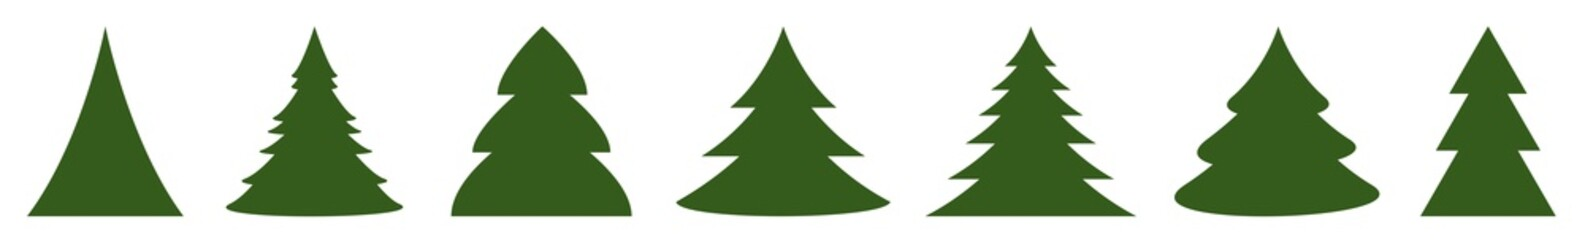 Christmas Tree Green Icon | Fir Tree Illustration | x-mas Symbol | Logo | Isolated Variations